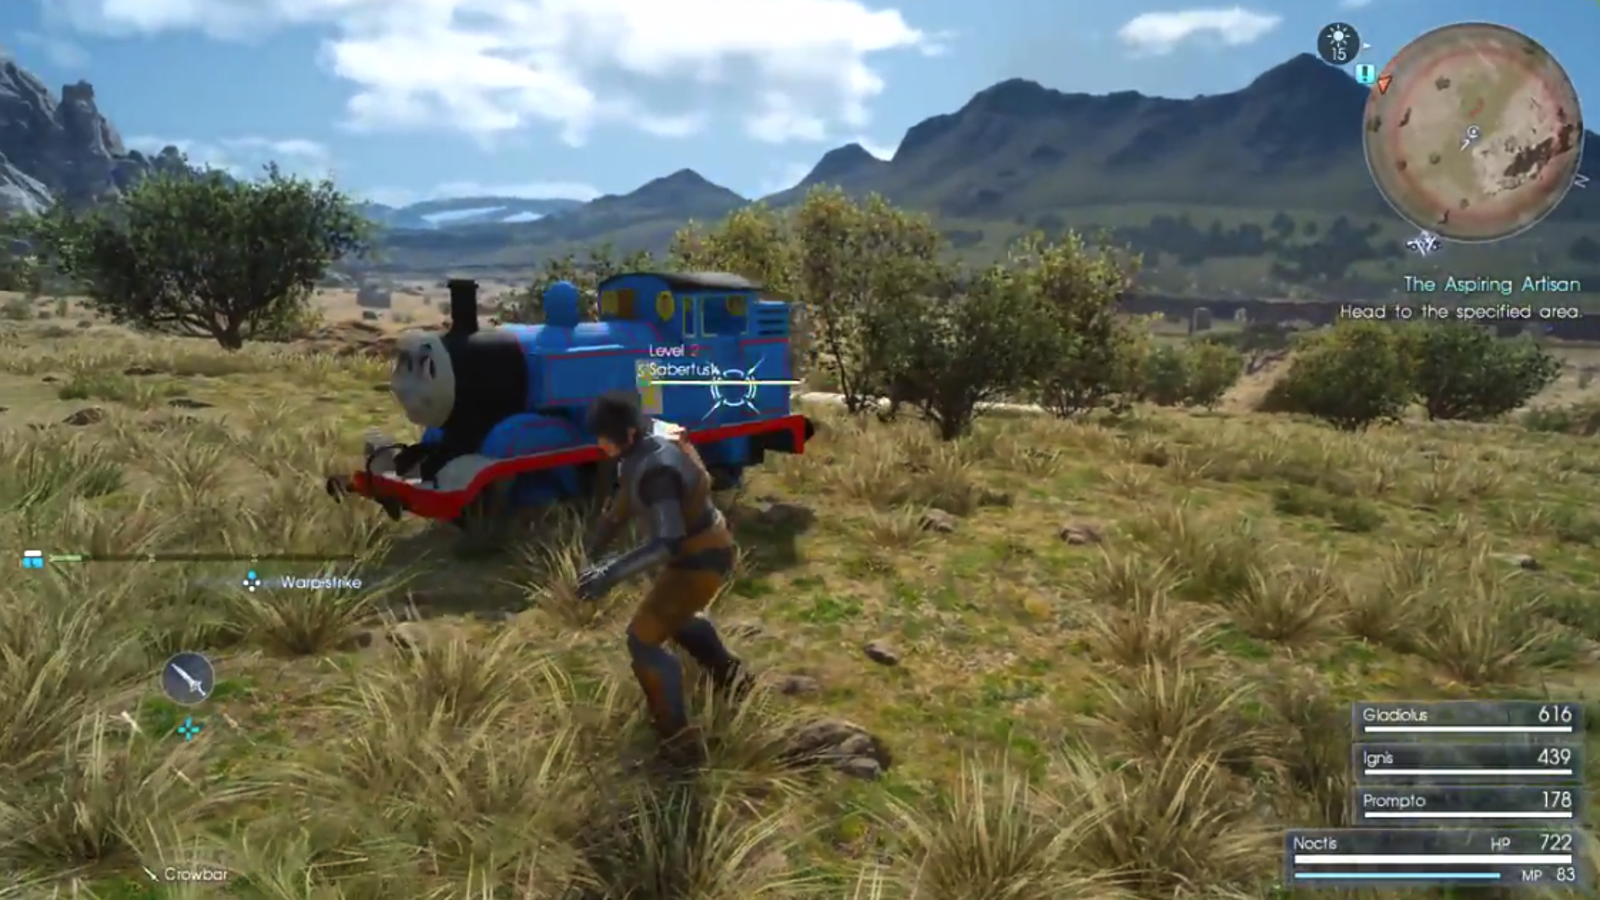 Final Fantasy XV Finally Gets Mod Support On PC